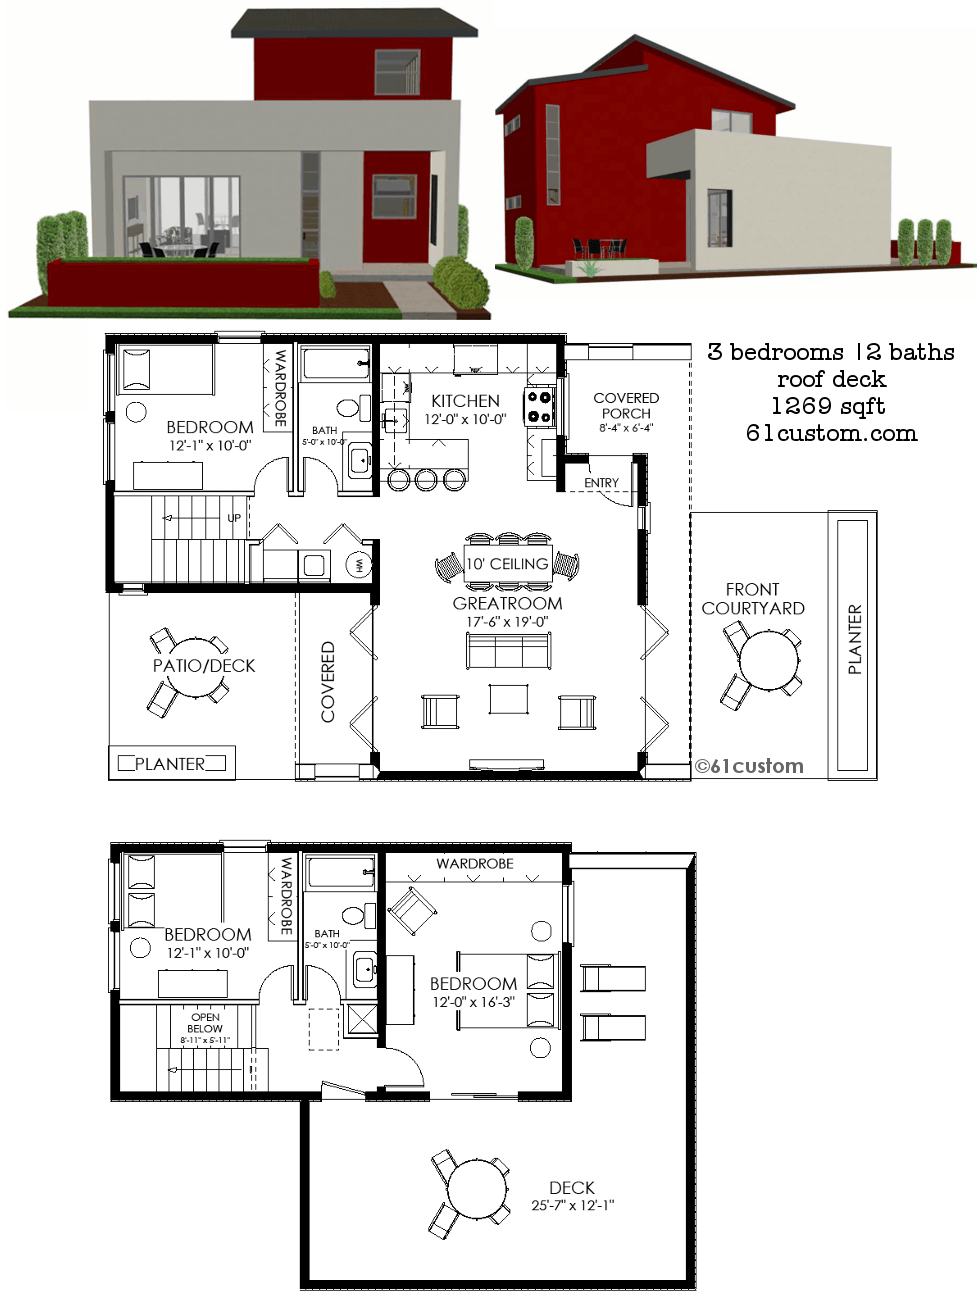 Contemporary small house plan 61custom contemporary modern house plans - Small house plans ...